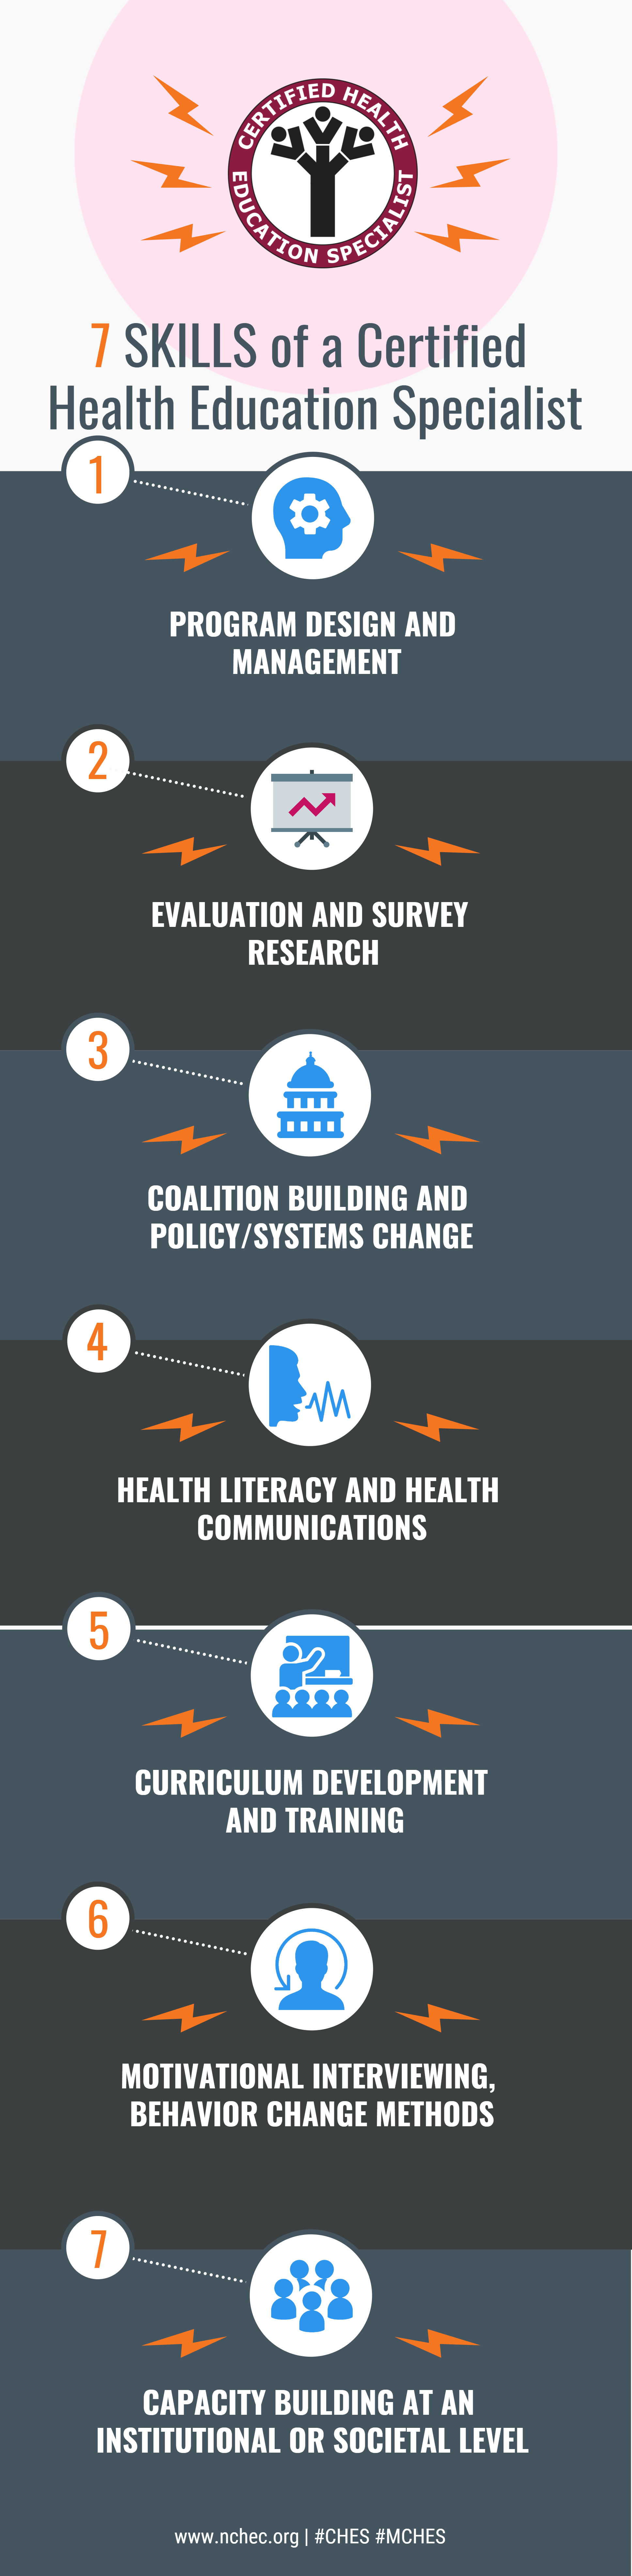 7 Skills of a Certified Health Education Specialist Infographic